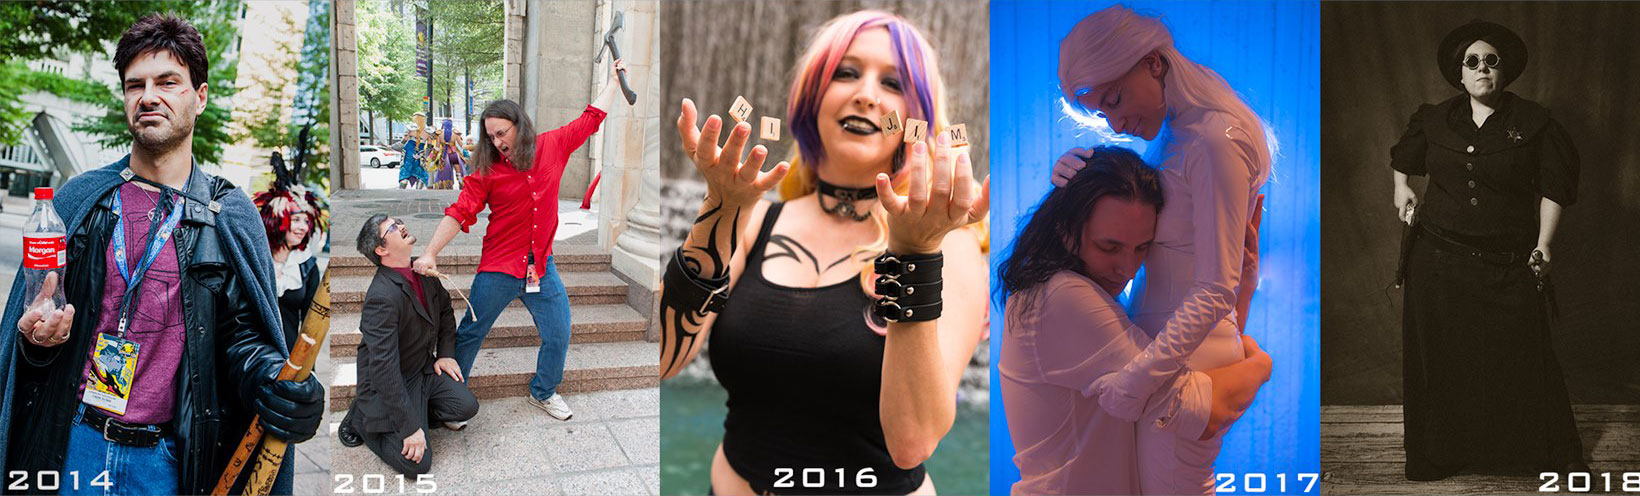 Banner of photos from past DragonCon cosplay shoots